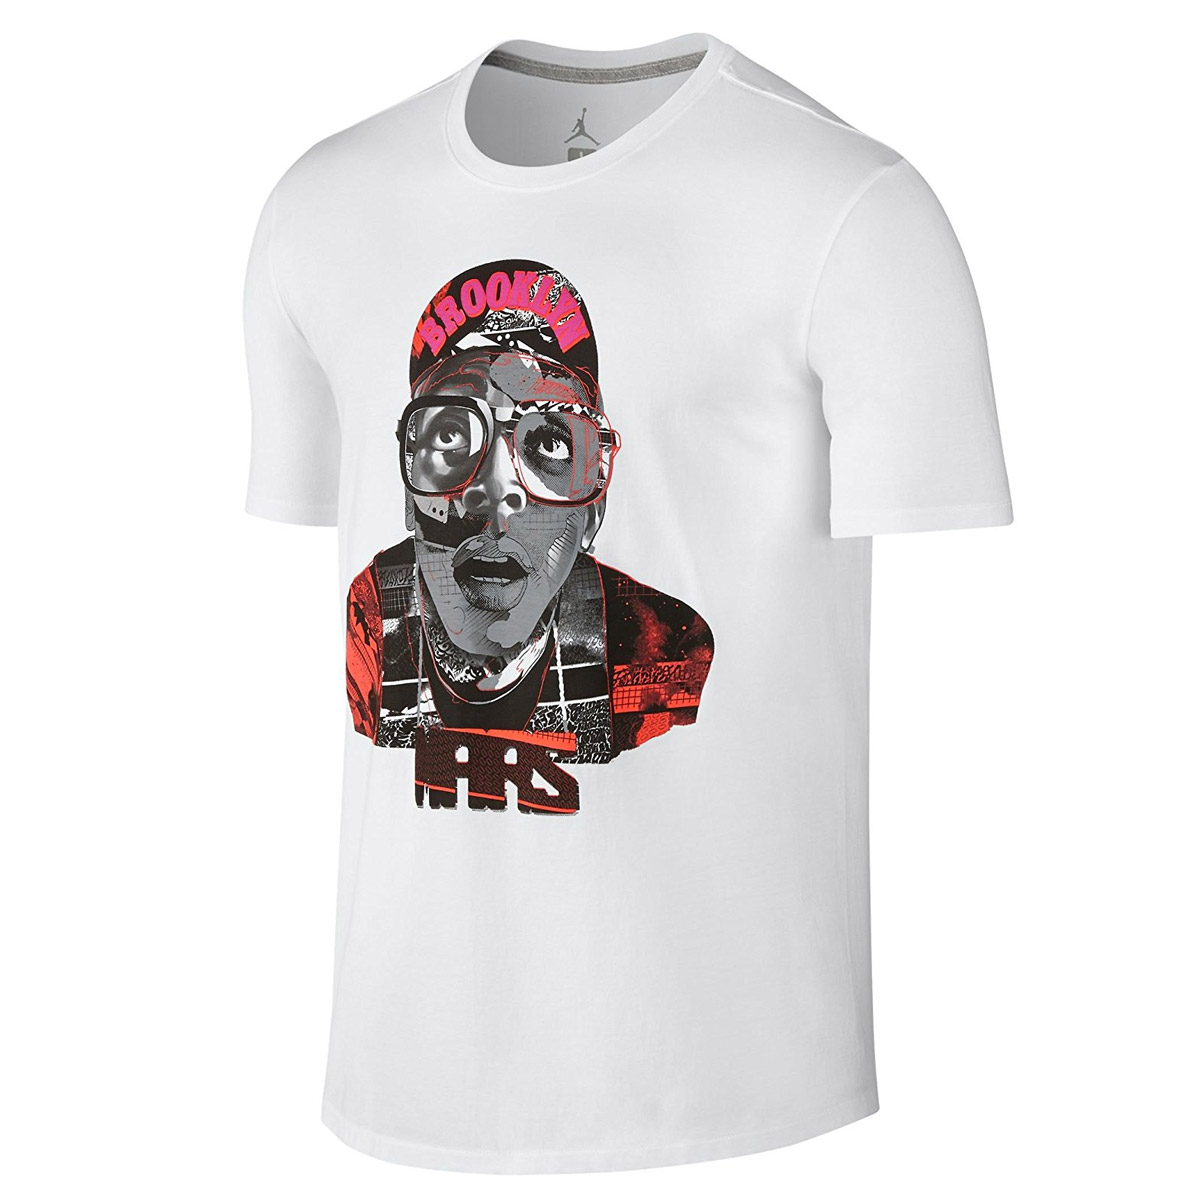 Nike Air Jordan Son Of Mars T Shirt White 687818 100 Mycraze